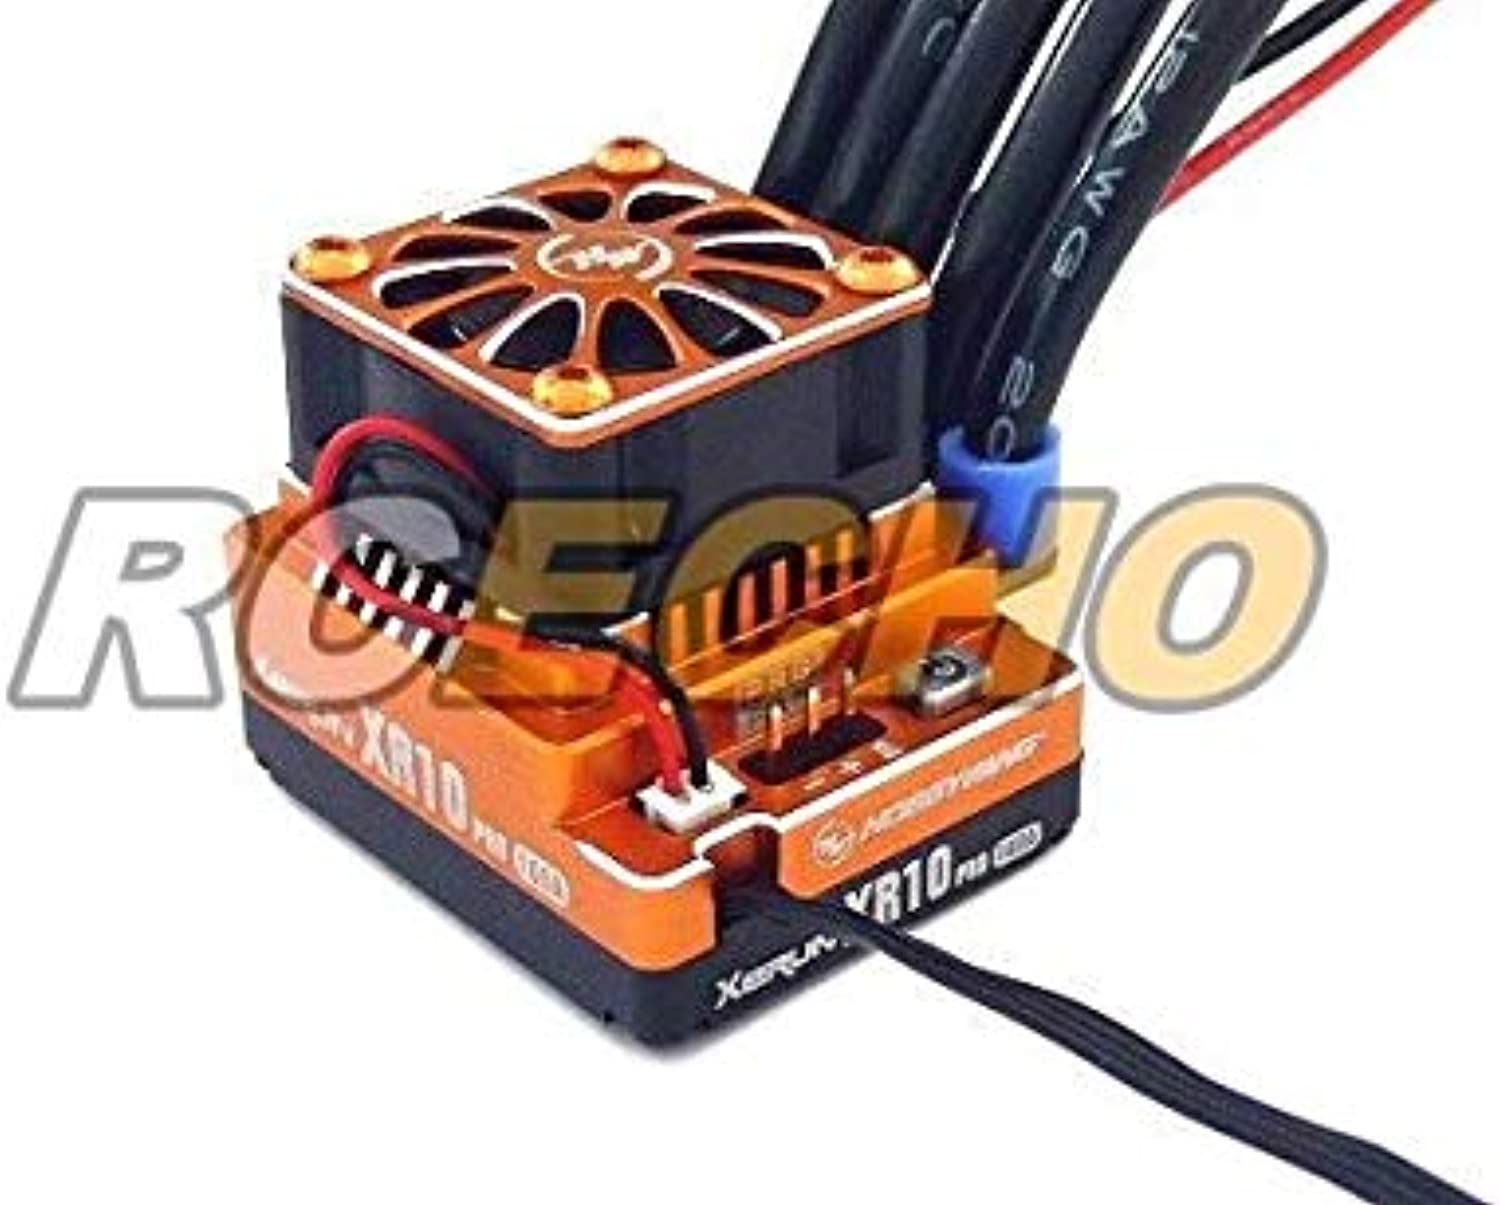 RCECHO& 174; HOBBYWING XERUN Orange XR10 PRO 160A Brushless Motor ESC Speed Controller SL263 with 174; Full Version Apps Edition